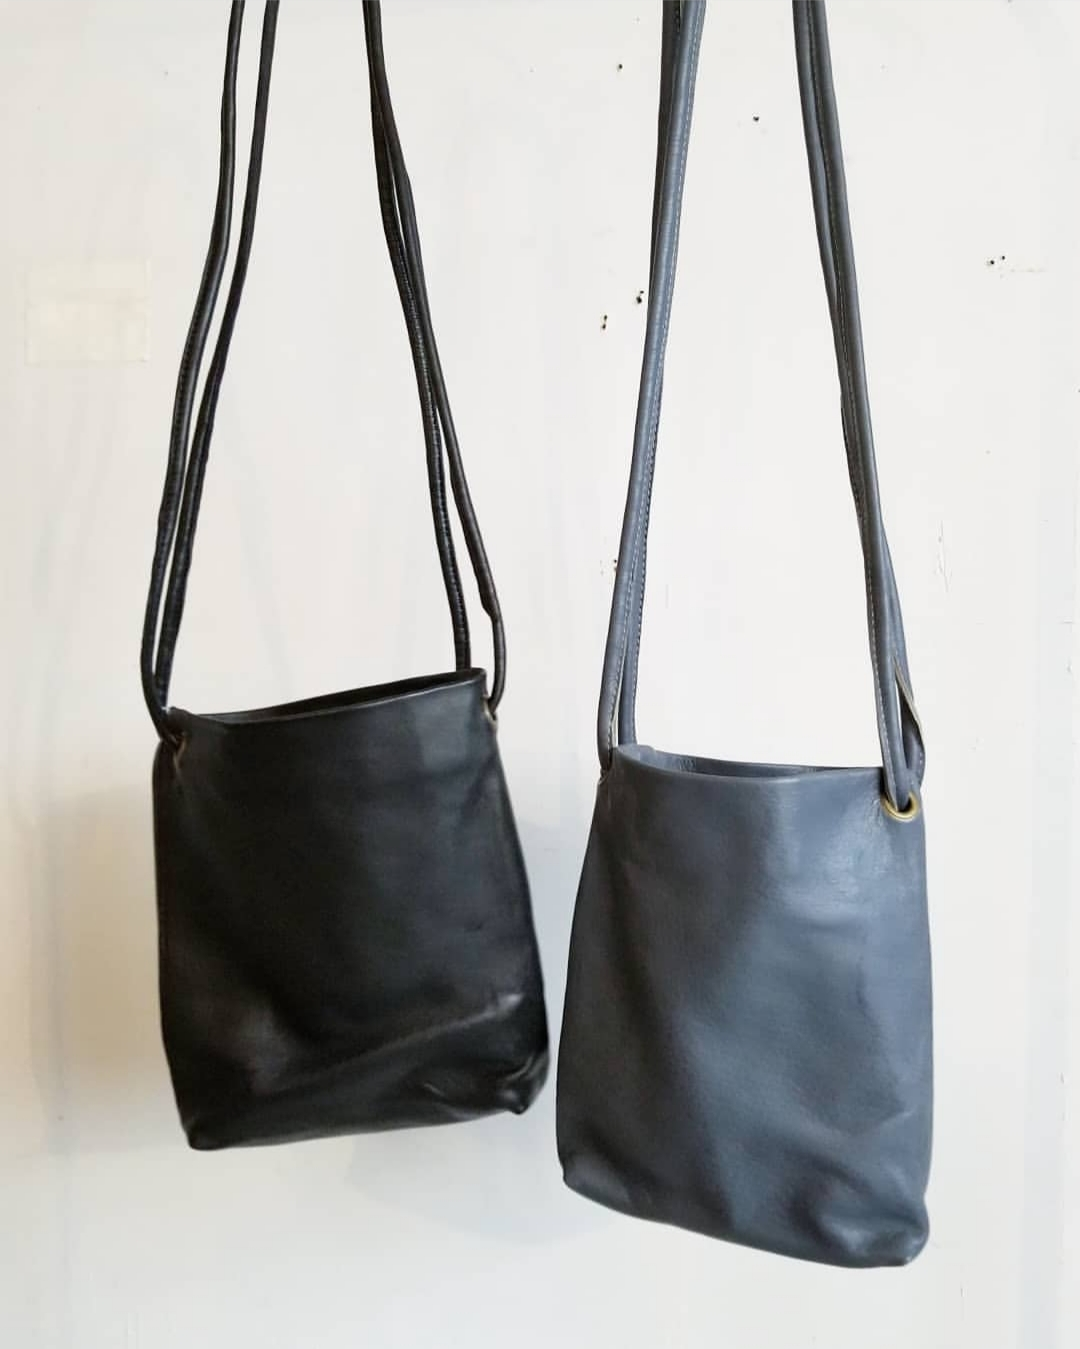 STRING BAG と SHOULDER BAG  _f0120026_17555714.jpg